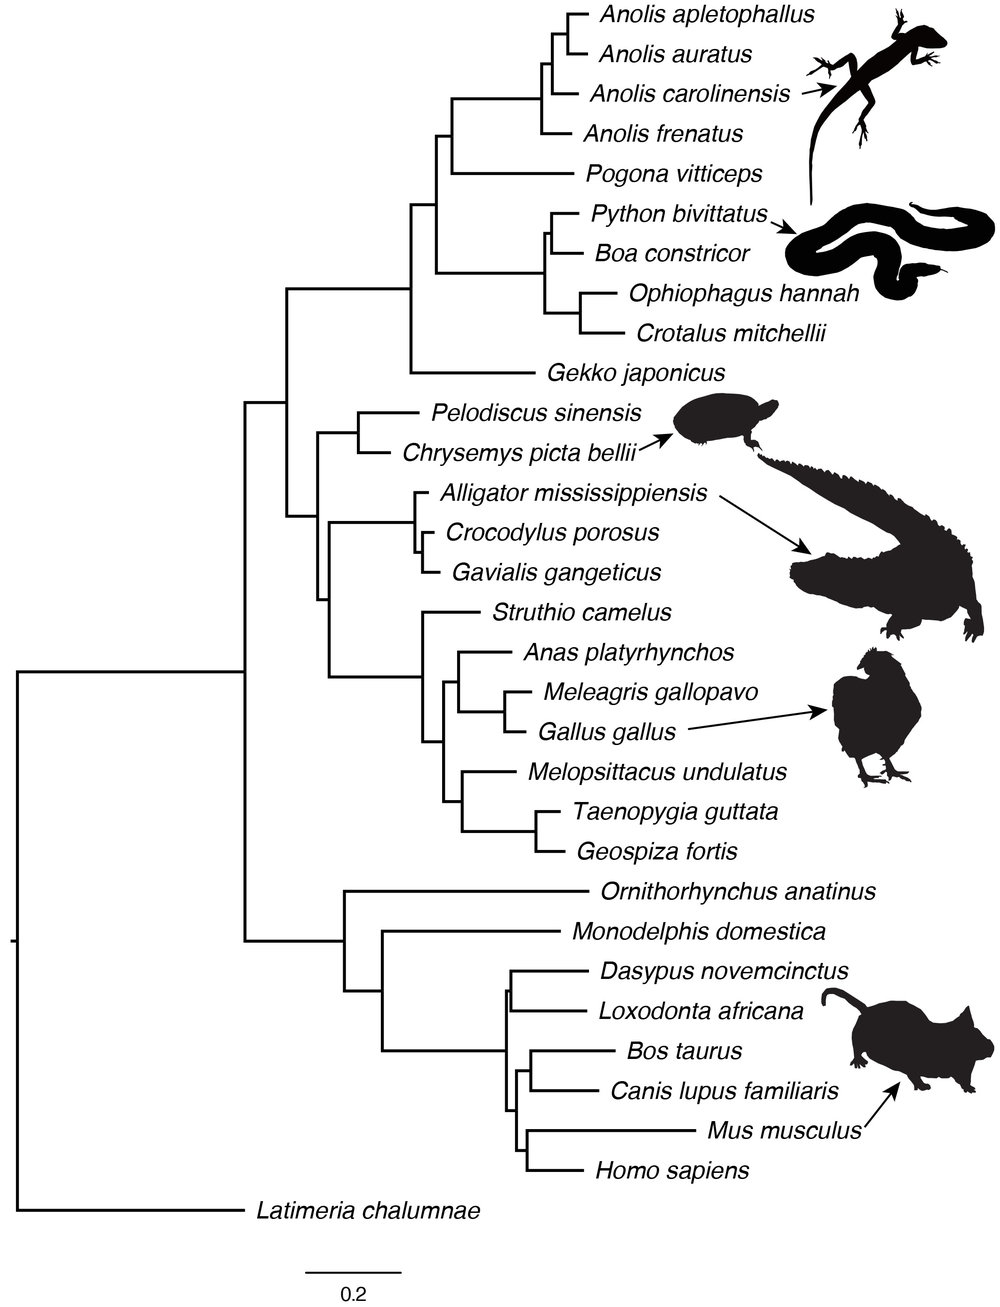 Phylogenomics and the Rate of Evolution - We use genomic markers to reconstruct the evolutionary history of lizards, snakes and other vertebrates in order to understand how rates of molecular evolution are related to rates of phenotypic evolution and speciation.